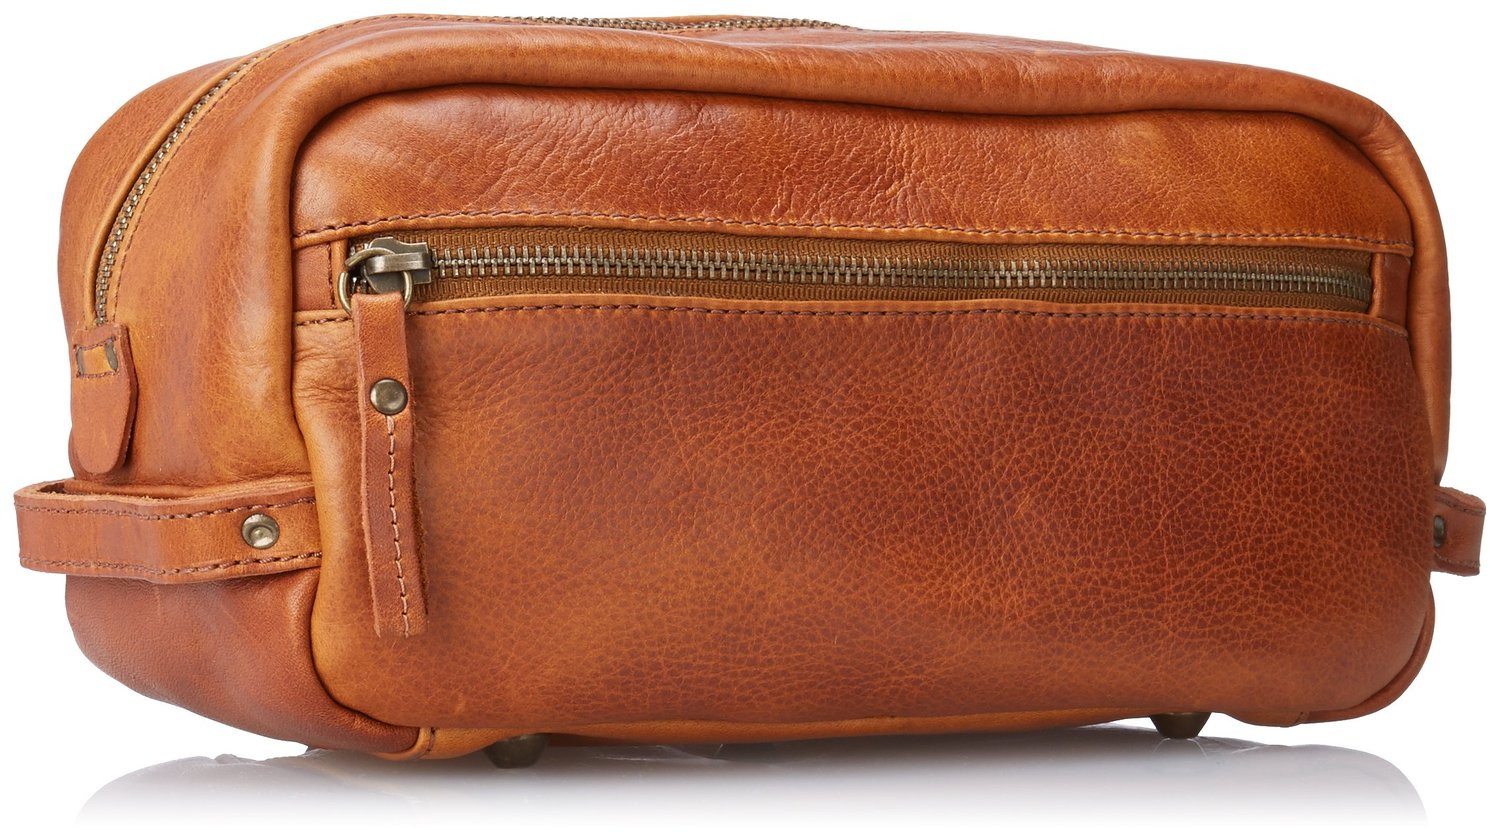 Will Leather's Grady Dopp Kit. ($195 for the leather version, or $90 for the [canvas-and-twill version](http://www.amazon.com/dp/B007T4NMKA?tag=toolsandtoys-20))